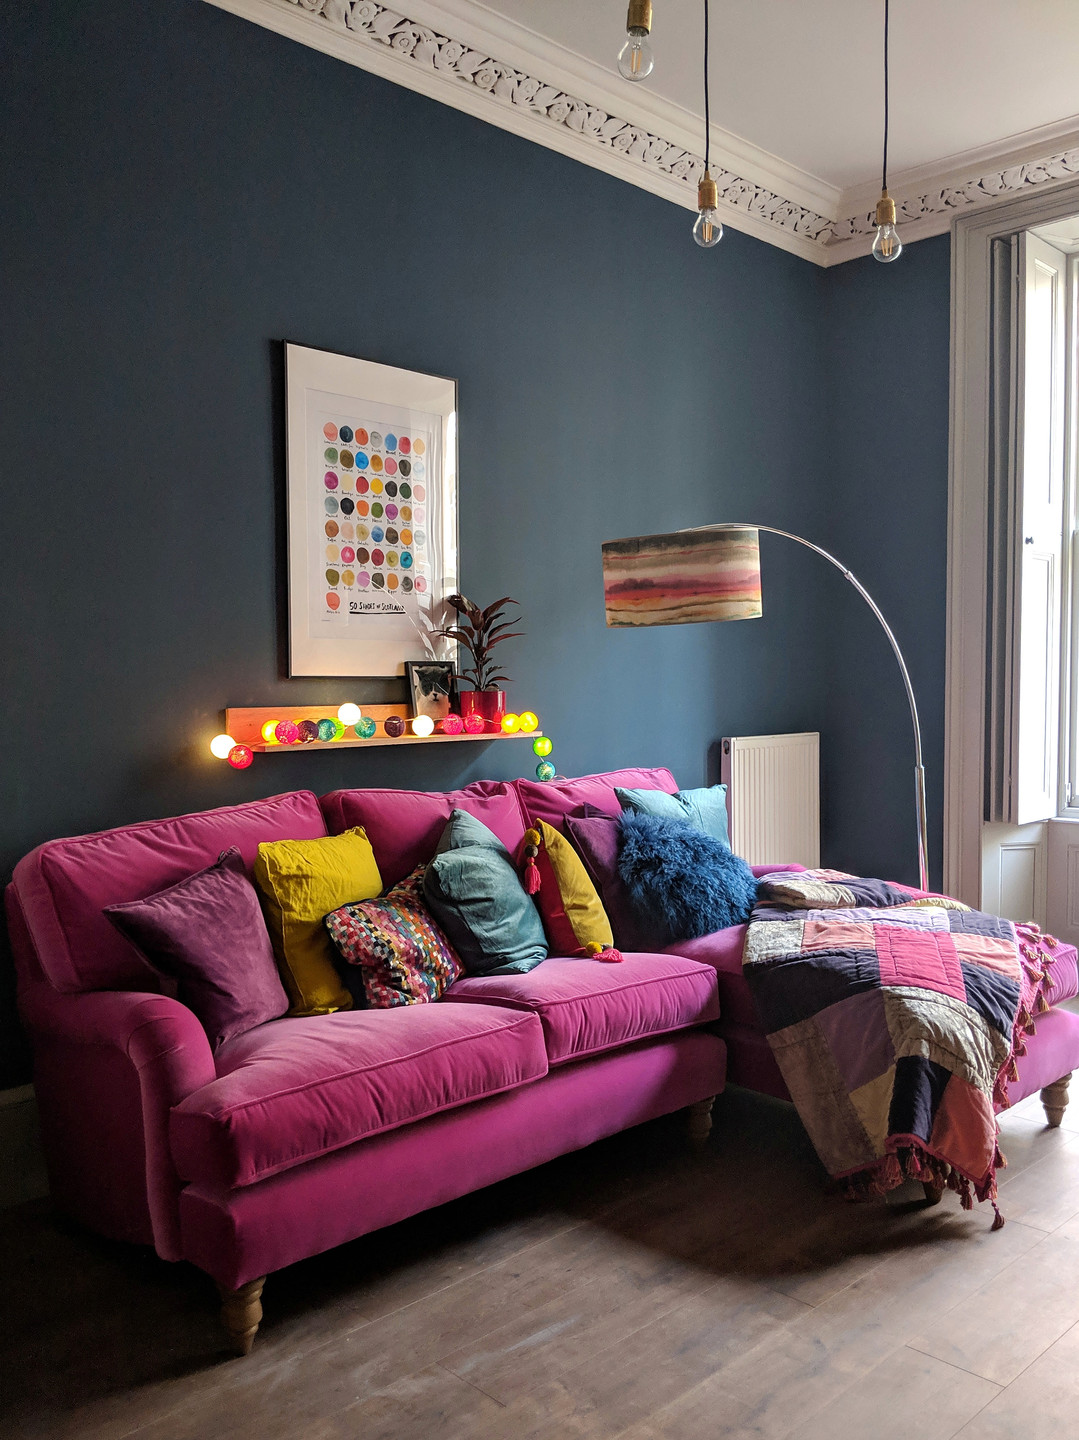 Bright pink sofa.com bluebell chaise with a dark blue wall and 50 shades of Scotland print